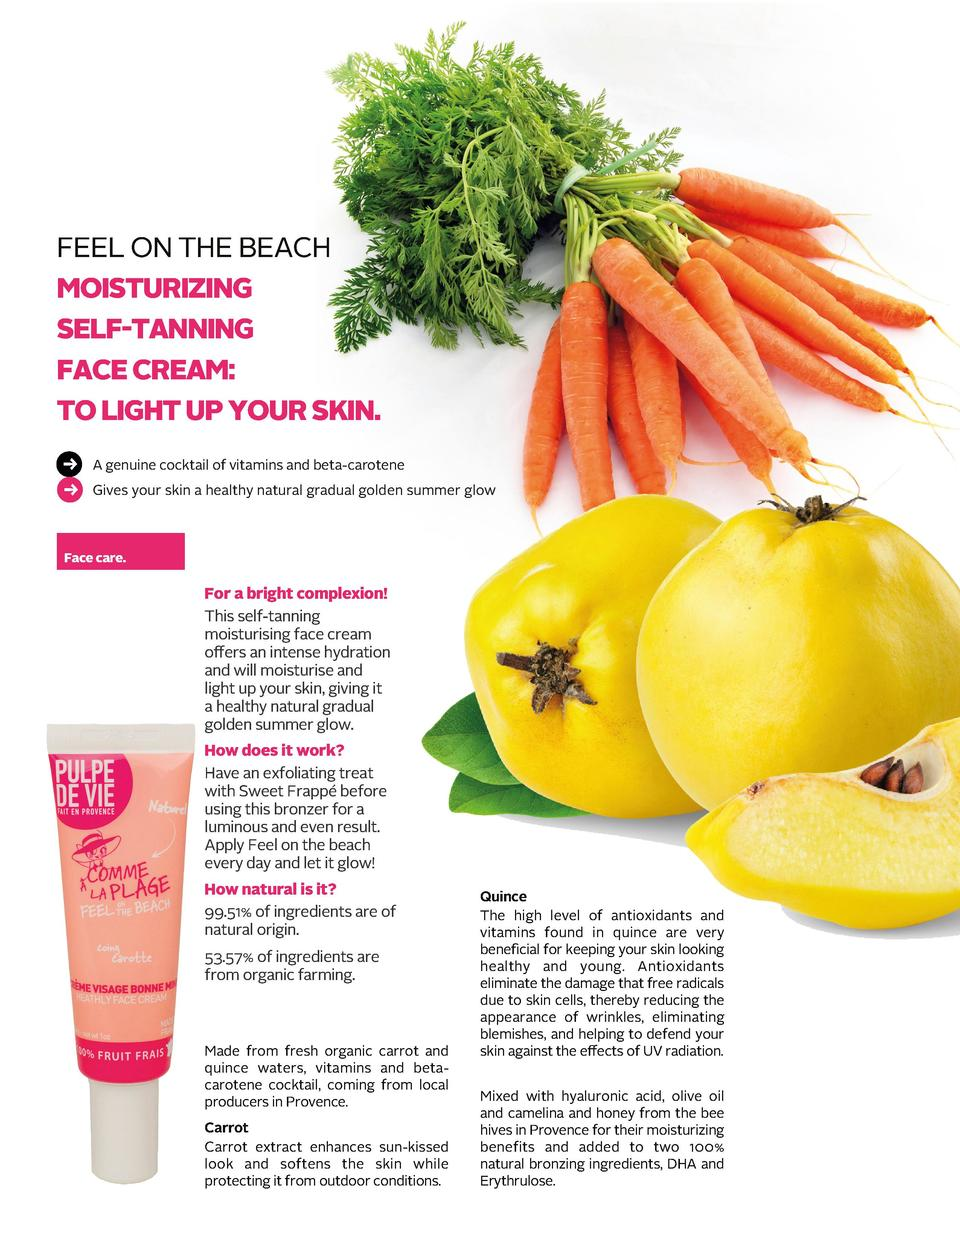 FEEL ON THE BEACH MOISTURIZING SELF-TANNING FACE CREAM  TO LIGHT UP YOUR SKIN. A genuine cocktail of vitamins and...